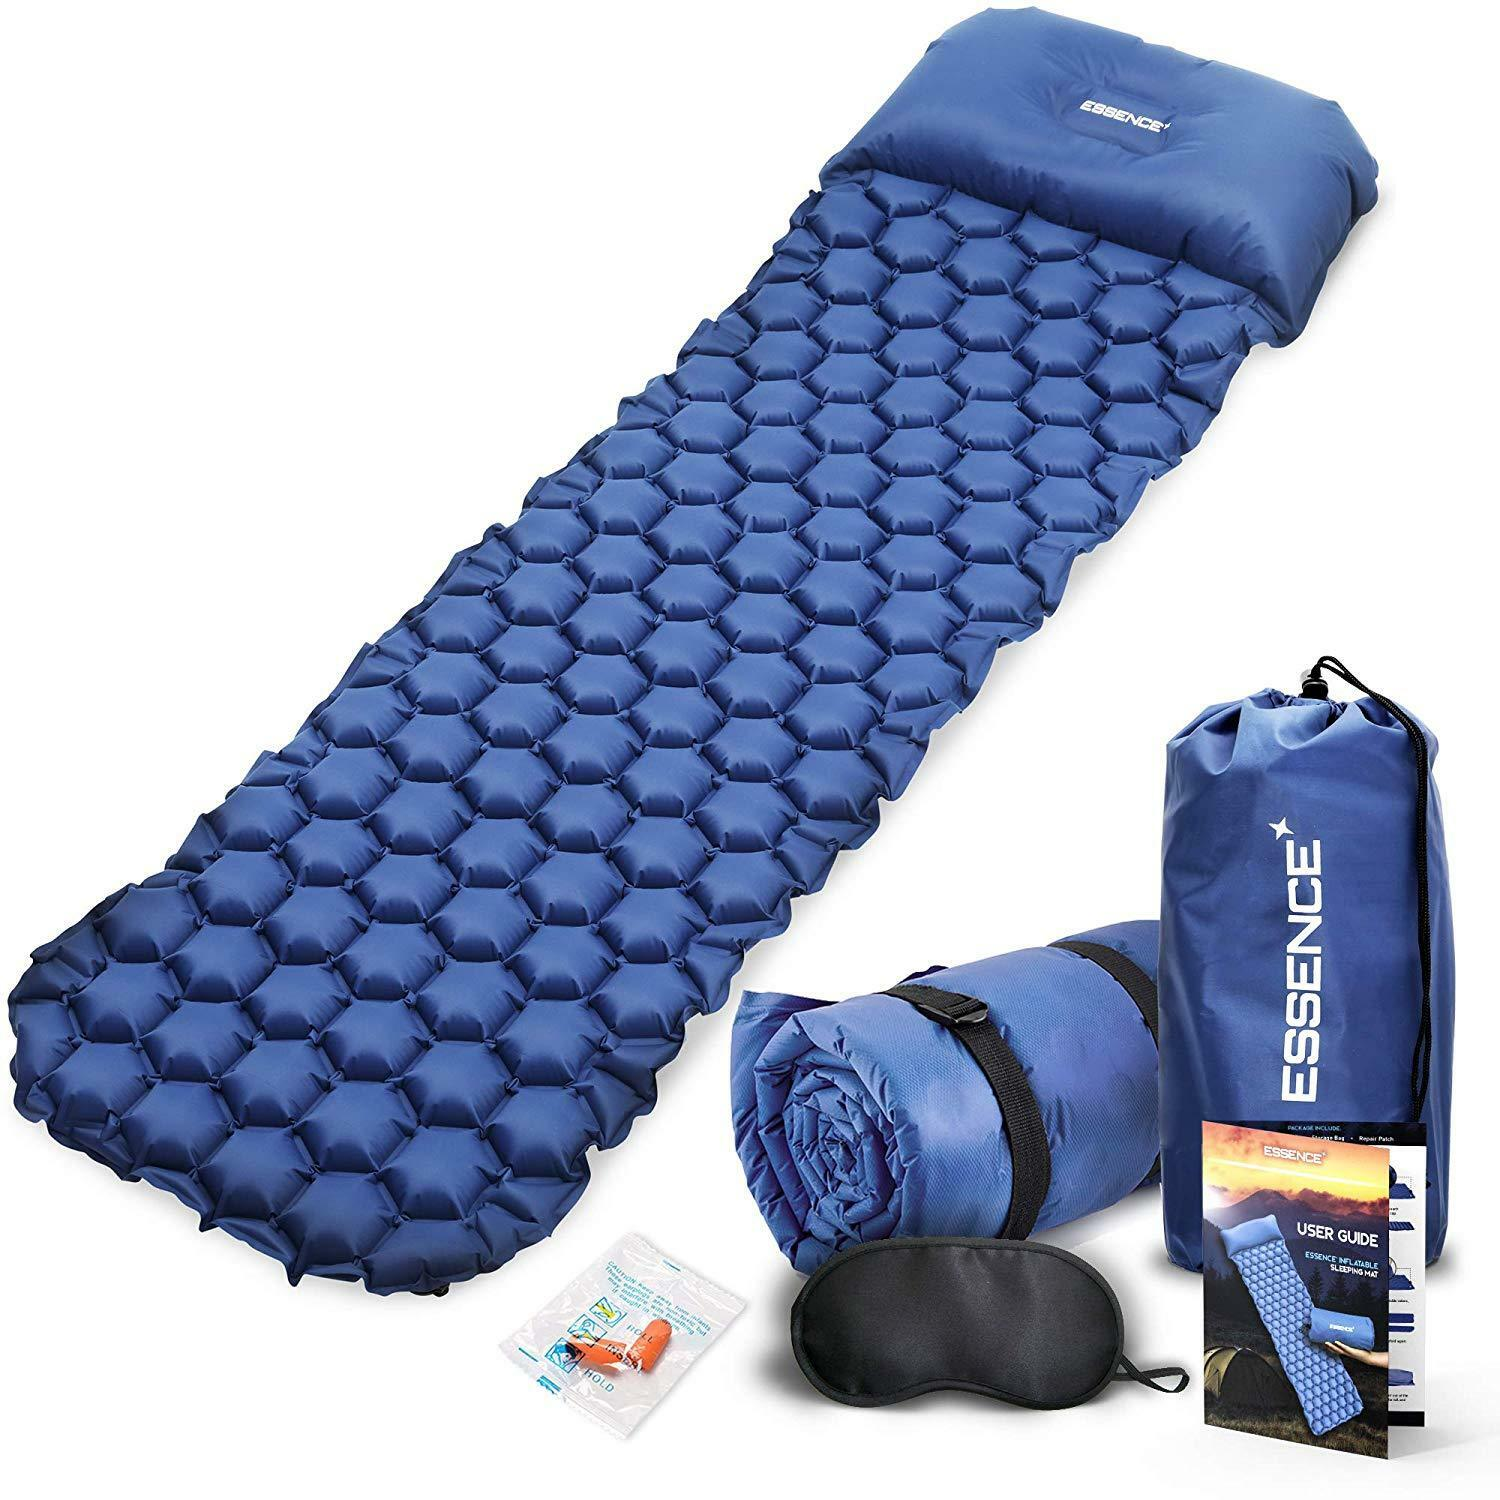 Sleeping Mat & Pillow Ultralight Self Inflating Camping Mattress  Mat Roll Mask  no hesitation!buy now!